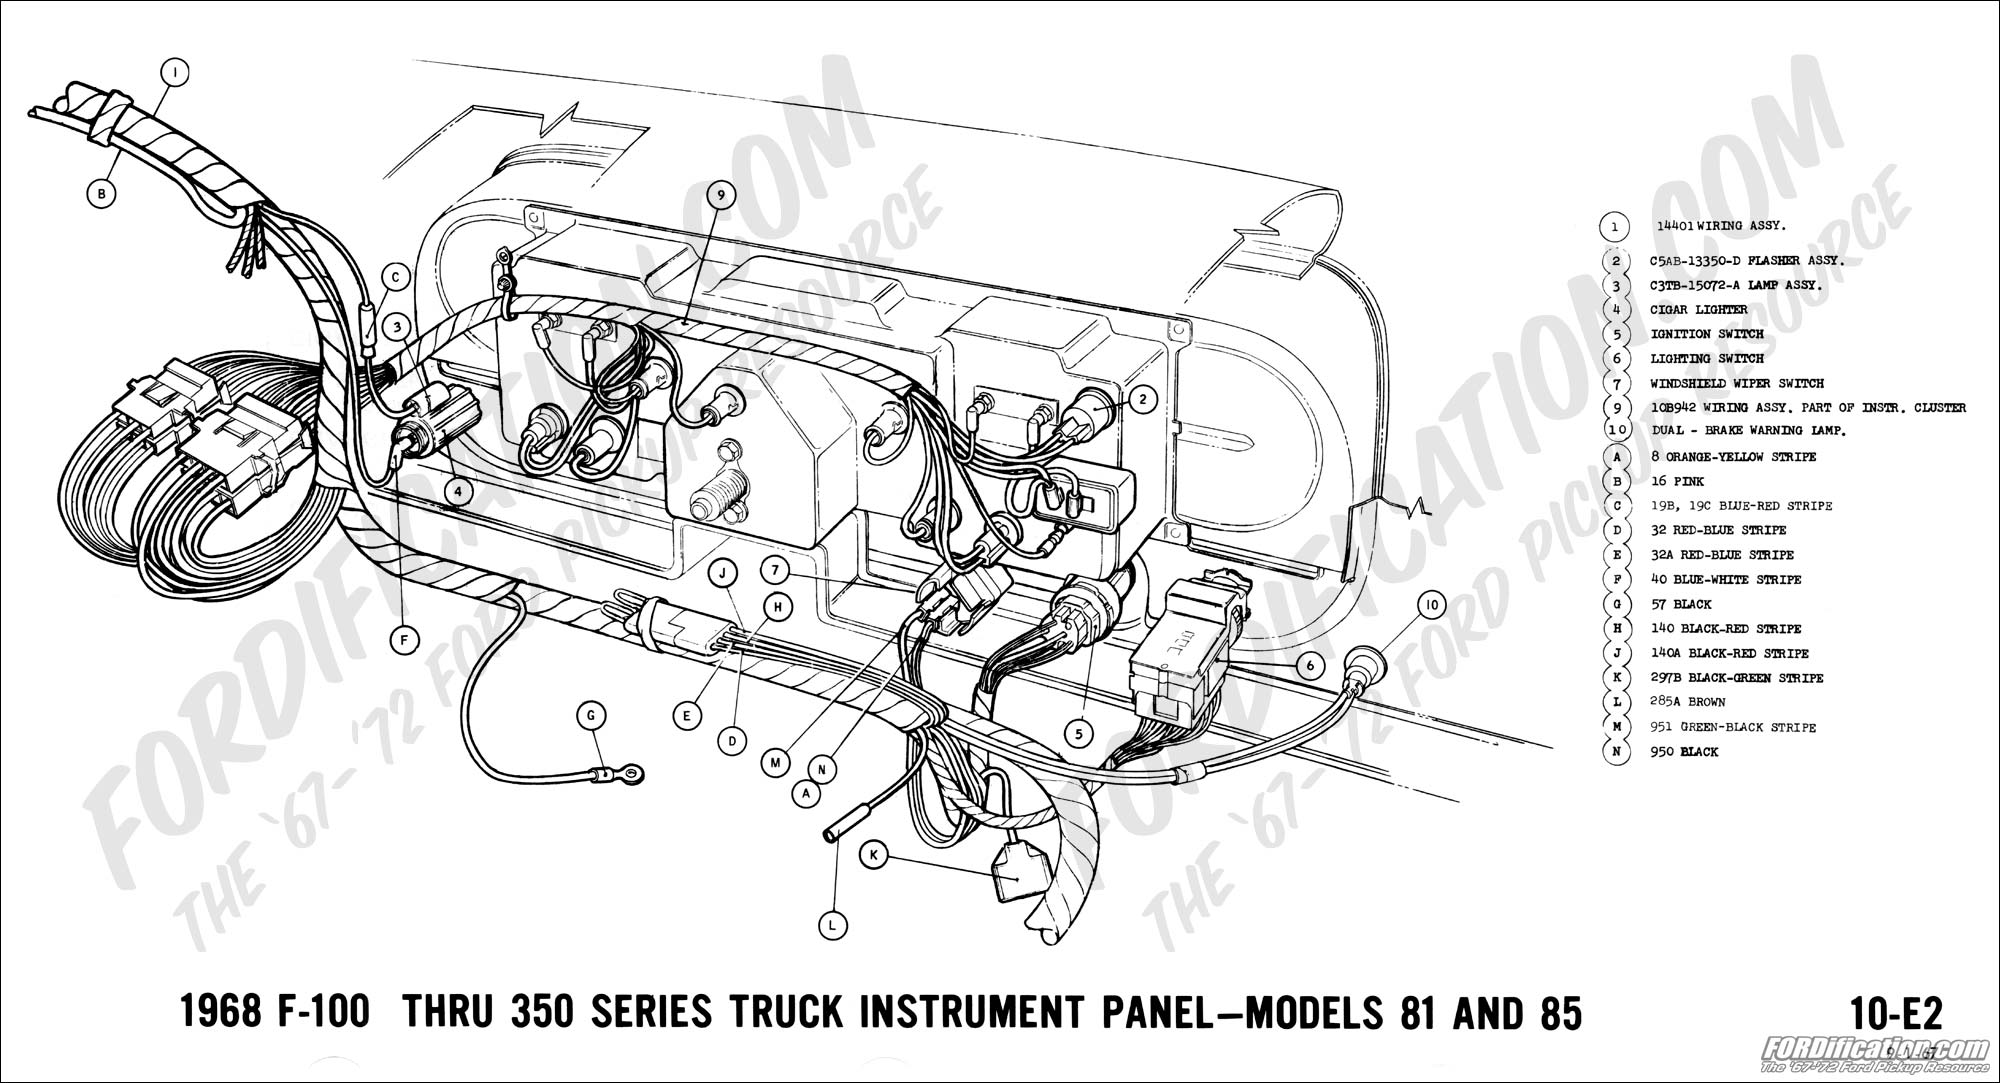 68 ford galaxy wiring diagram